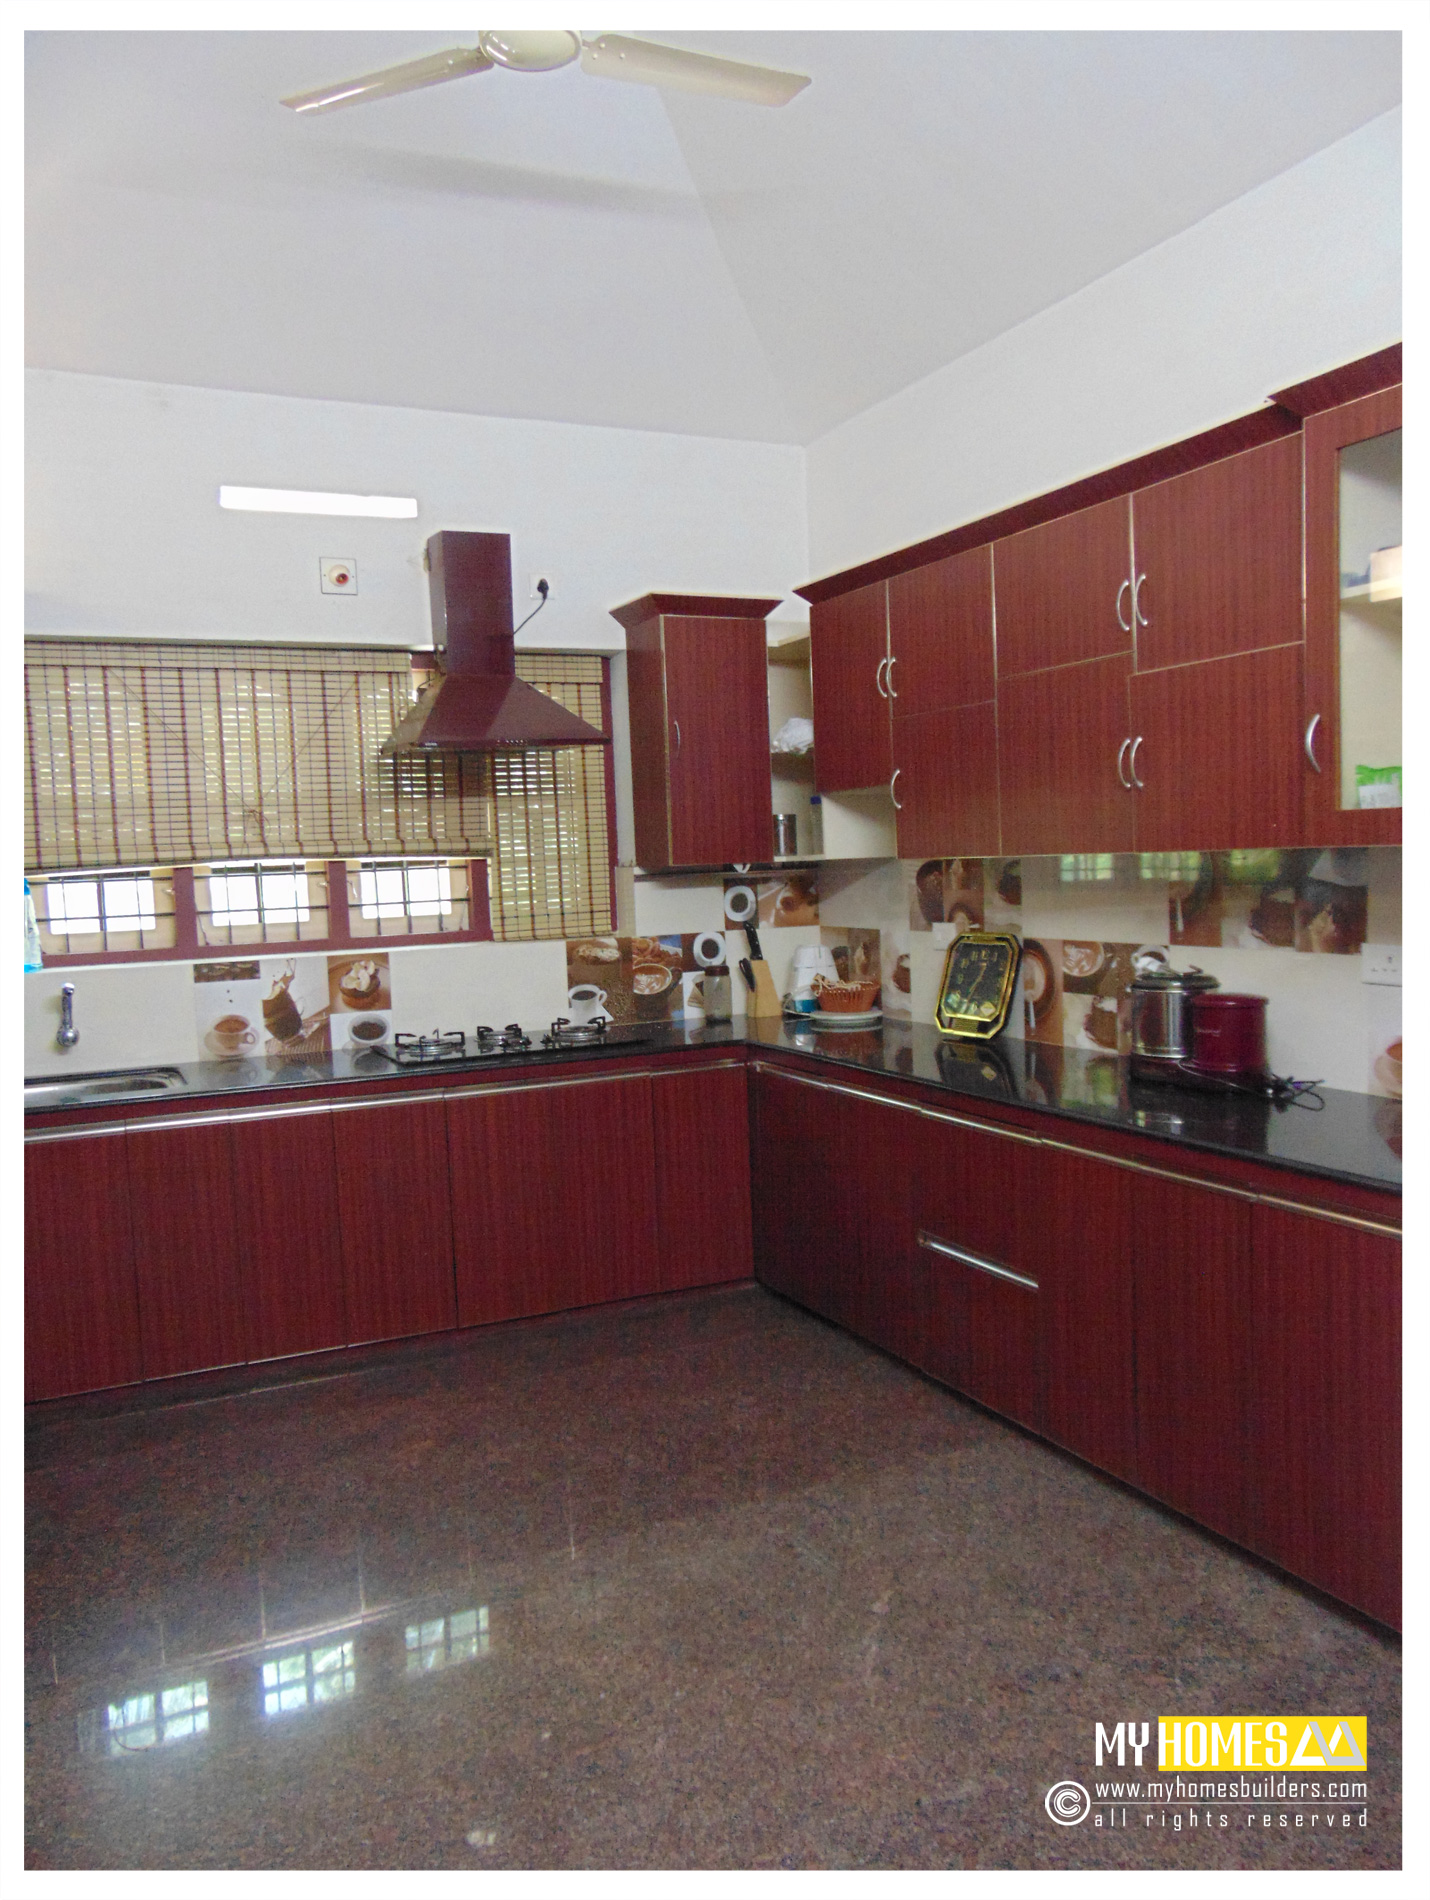 Latest kitchen design kerala in modular inteior designing for Latest interior design for kitchen